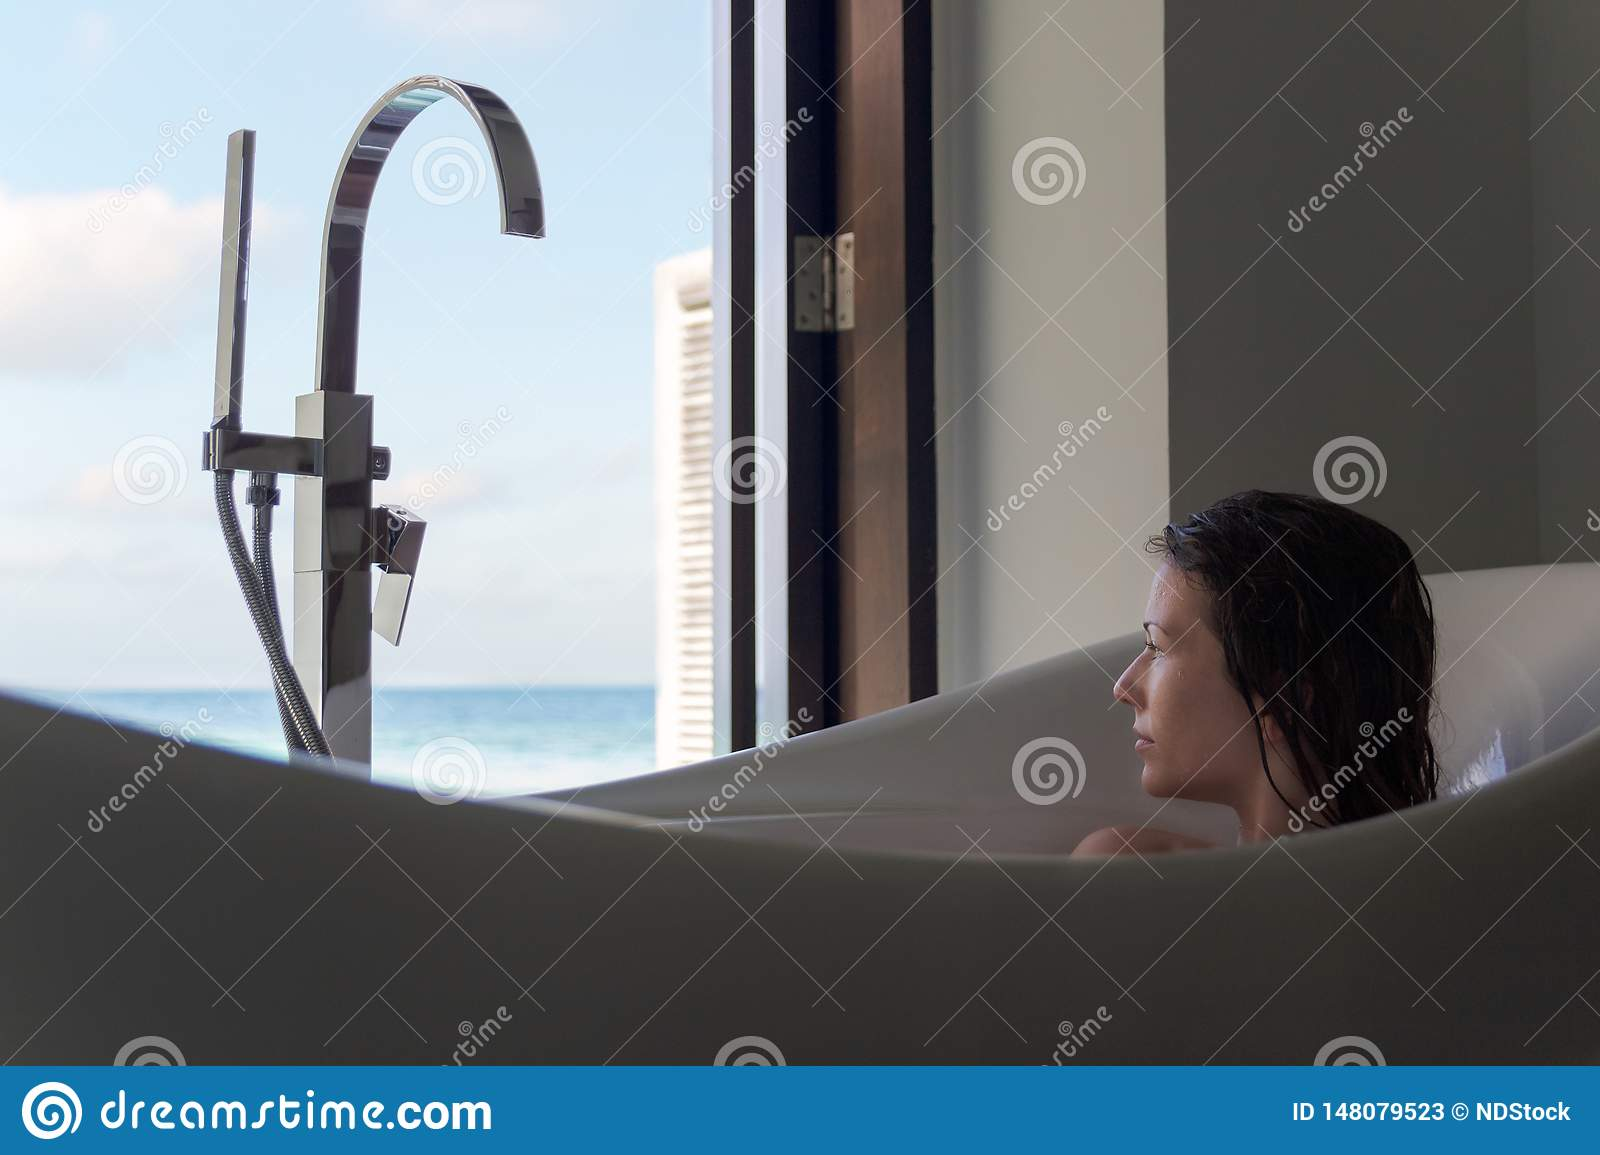 Young woman in bathtub admiring the view from the window. Tropical holiday destination